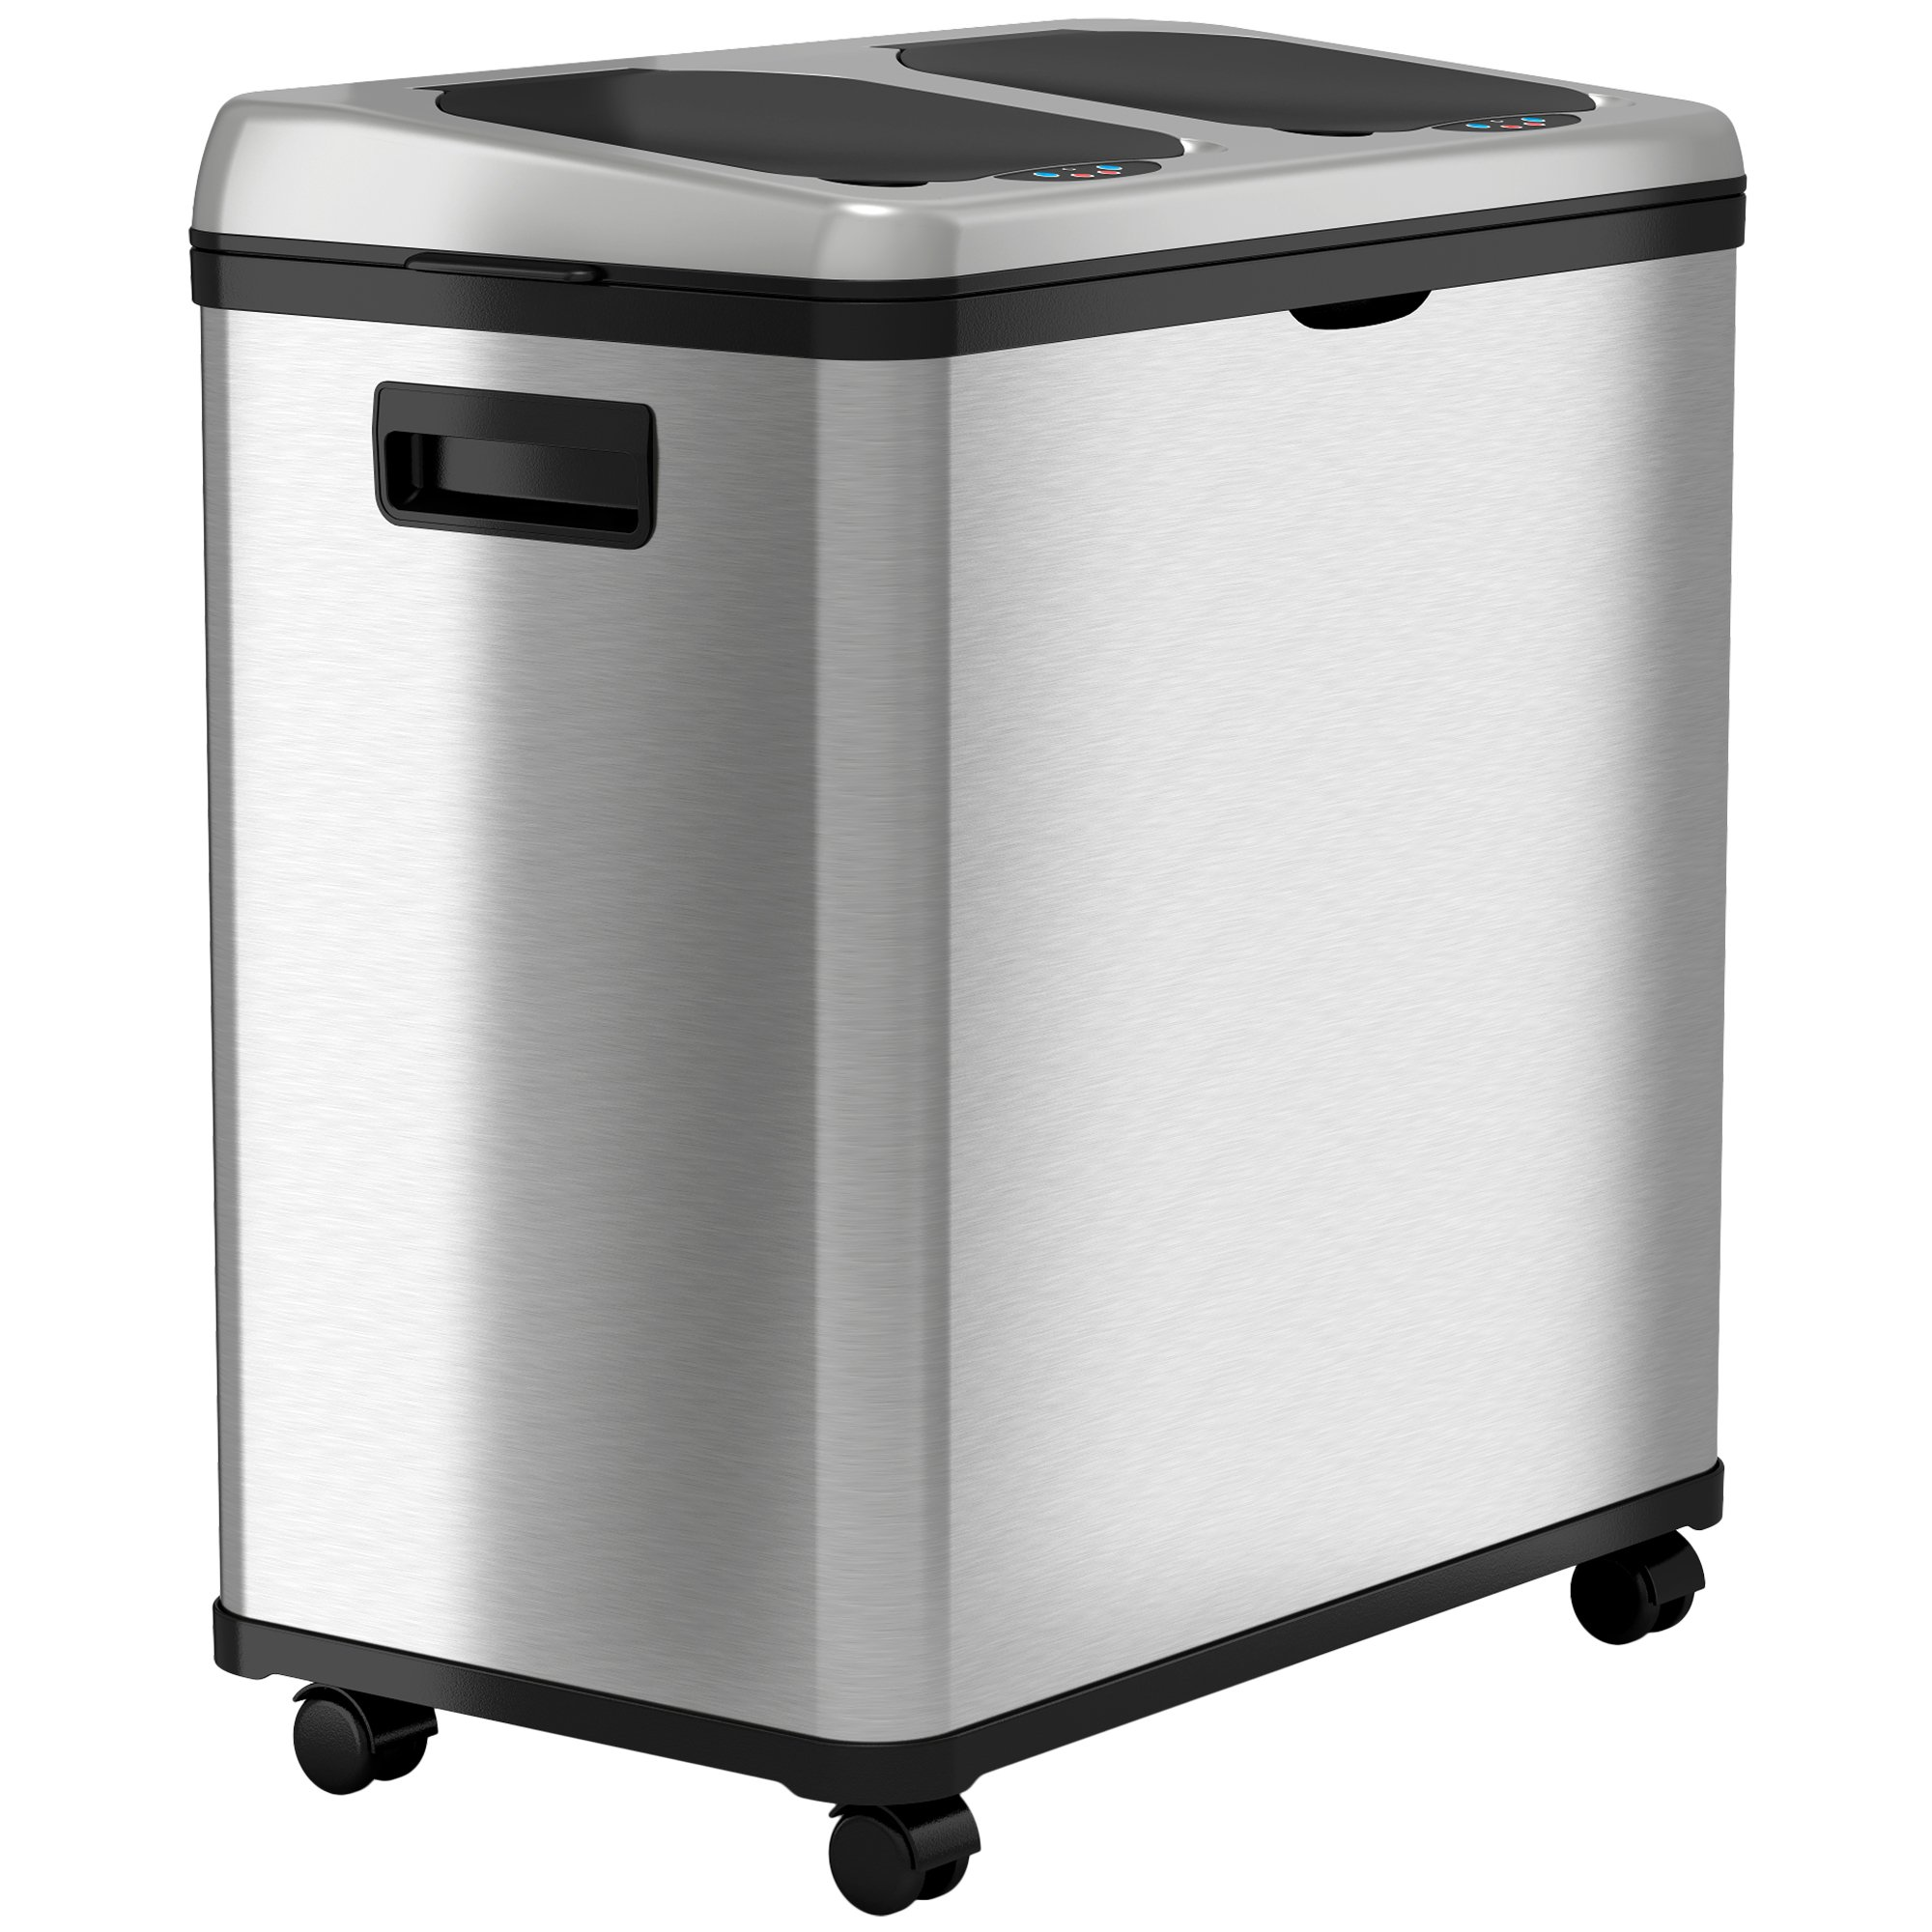 iTouchless Stainless Steel Trash Can / Recycler, Automatic Sensor Touchless Lid, Dual-Compartment (8 Gal each) – 16 Gal / 61 L